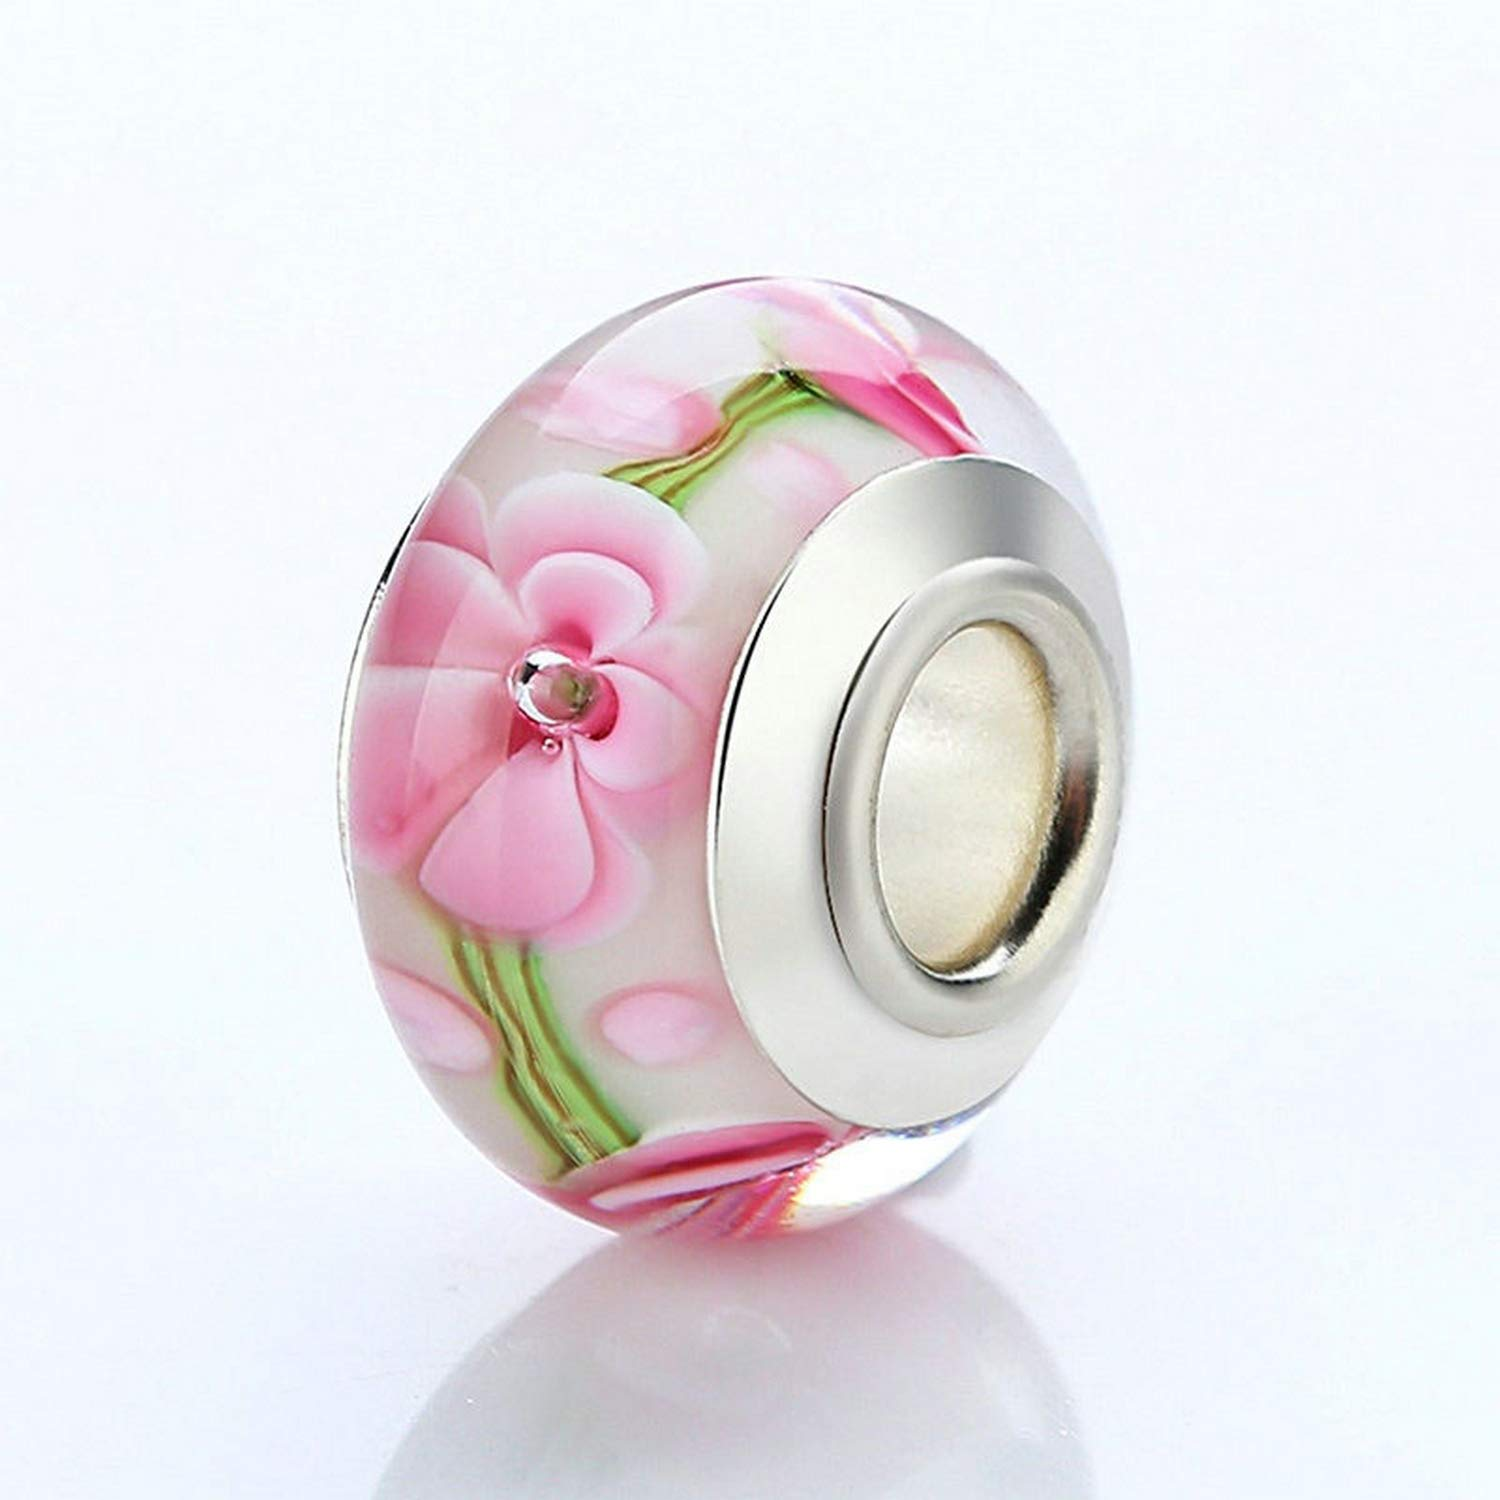 Evereena Silver Beads Bracelet for Girls Beautiful Pink Flower Murano Glass Womens Jewelry